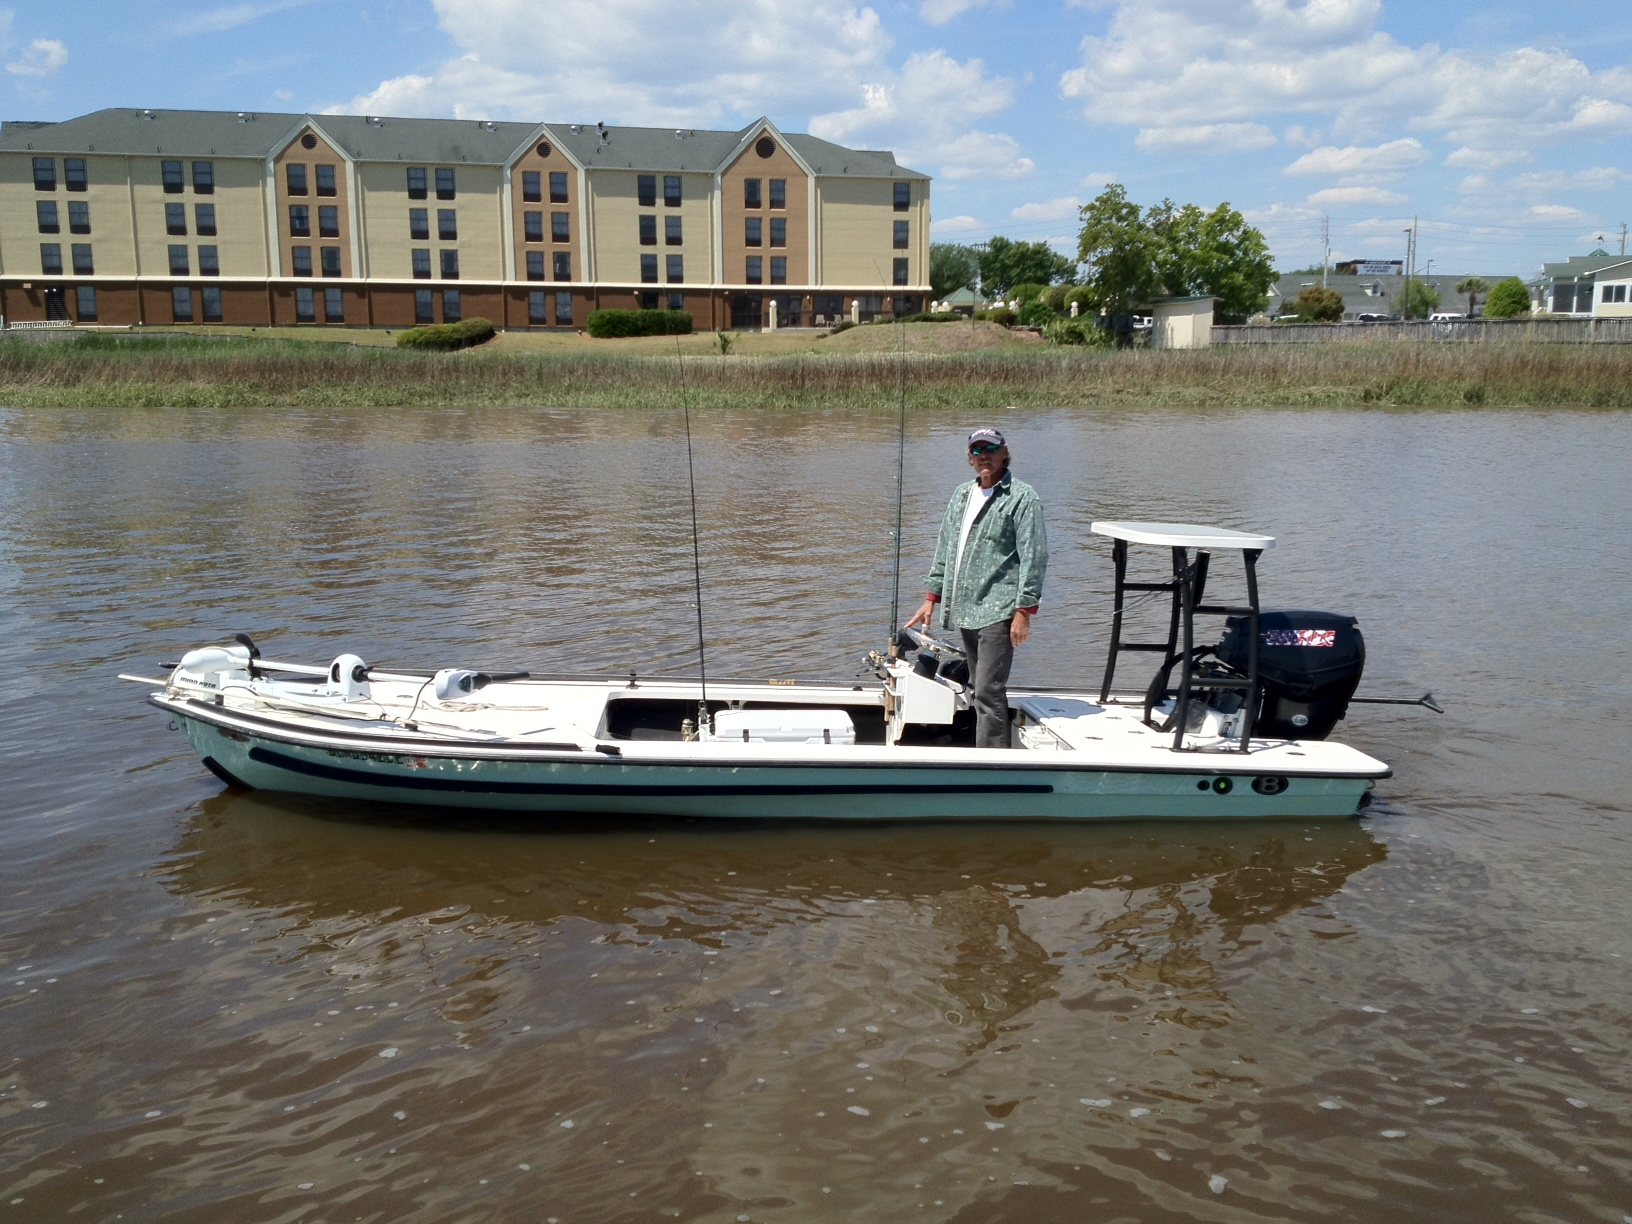 Another excellent boat that we have is a 17 foot beavertail flats